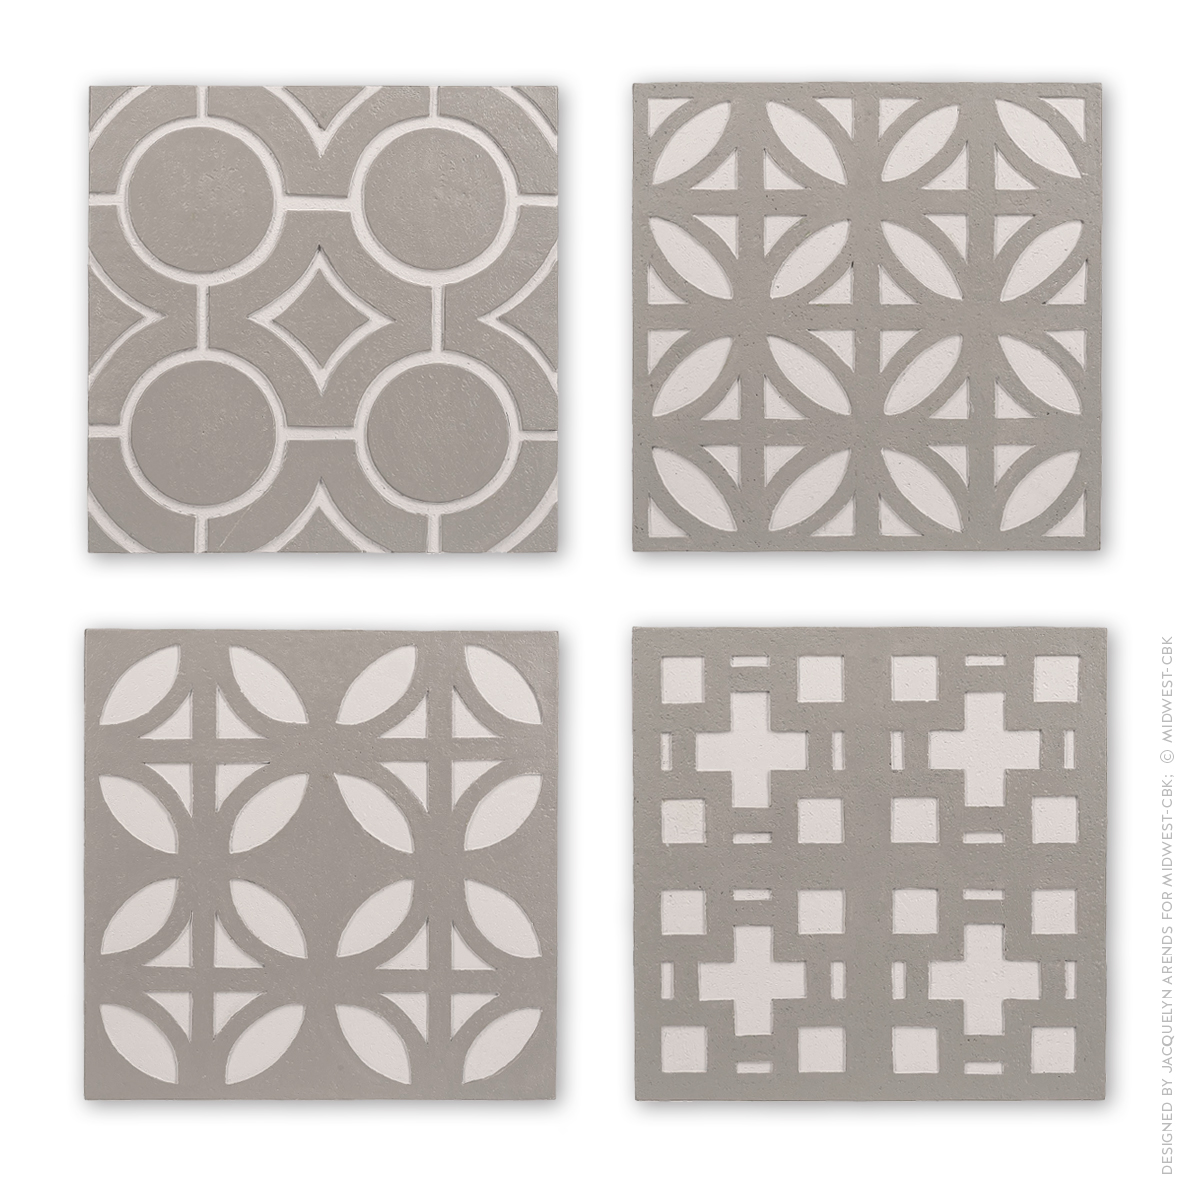 Stepping Stone repeating pattern design for Contemporary Garden Collection within Midwest-CBK's July 2017 product catalogue